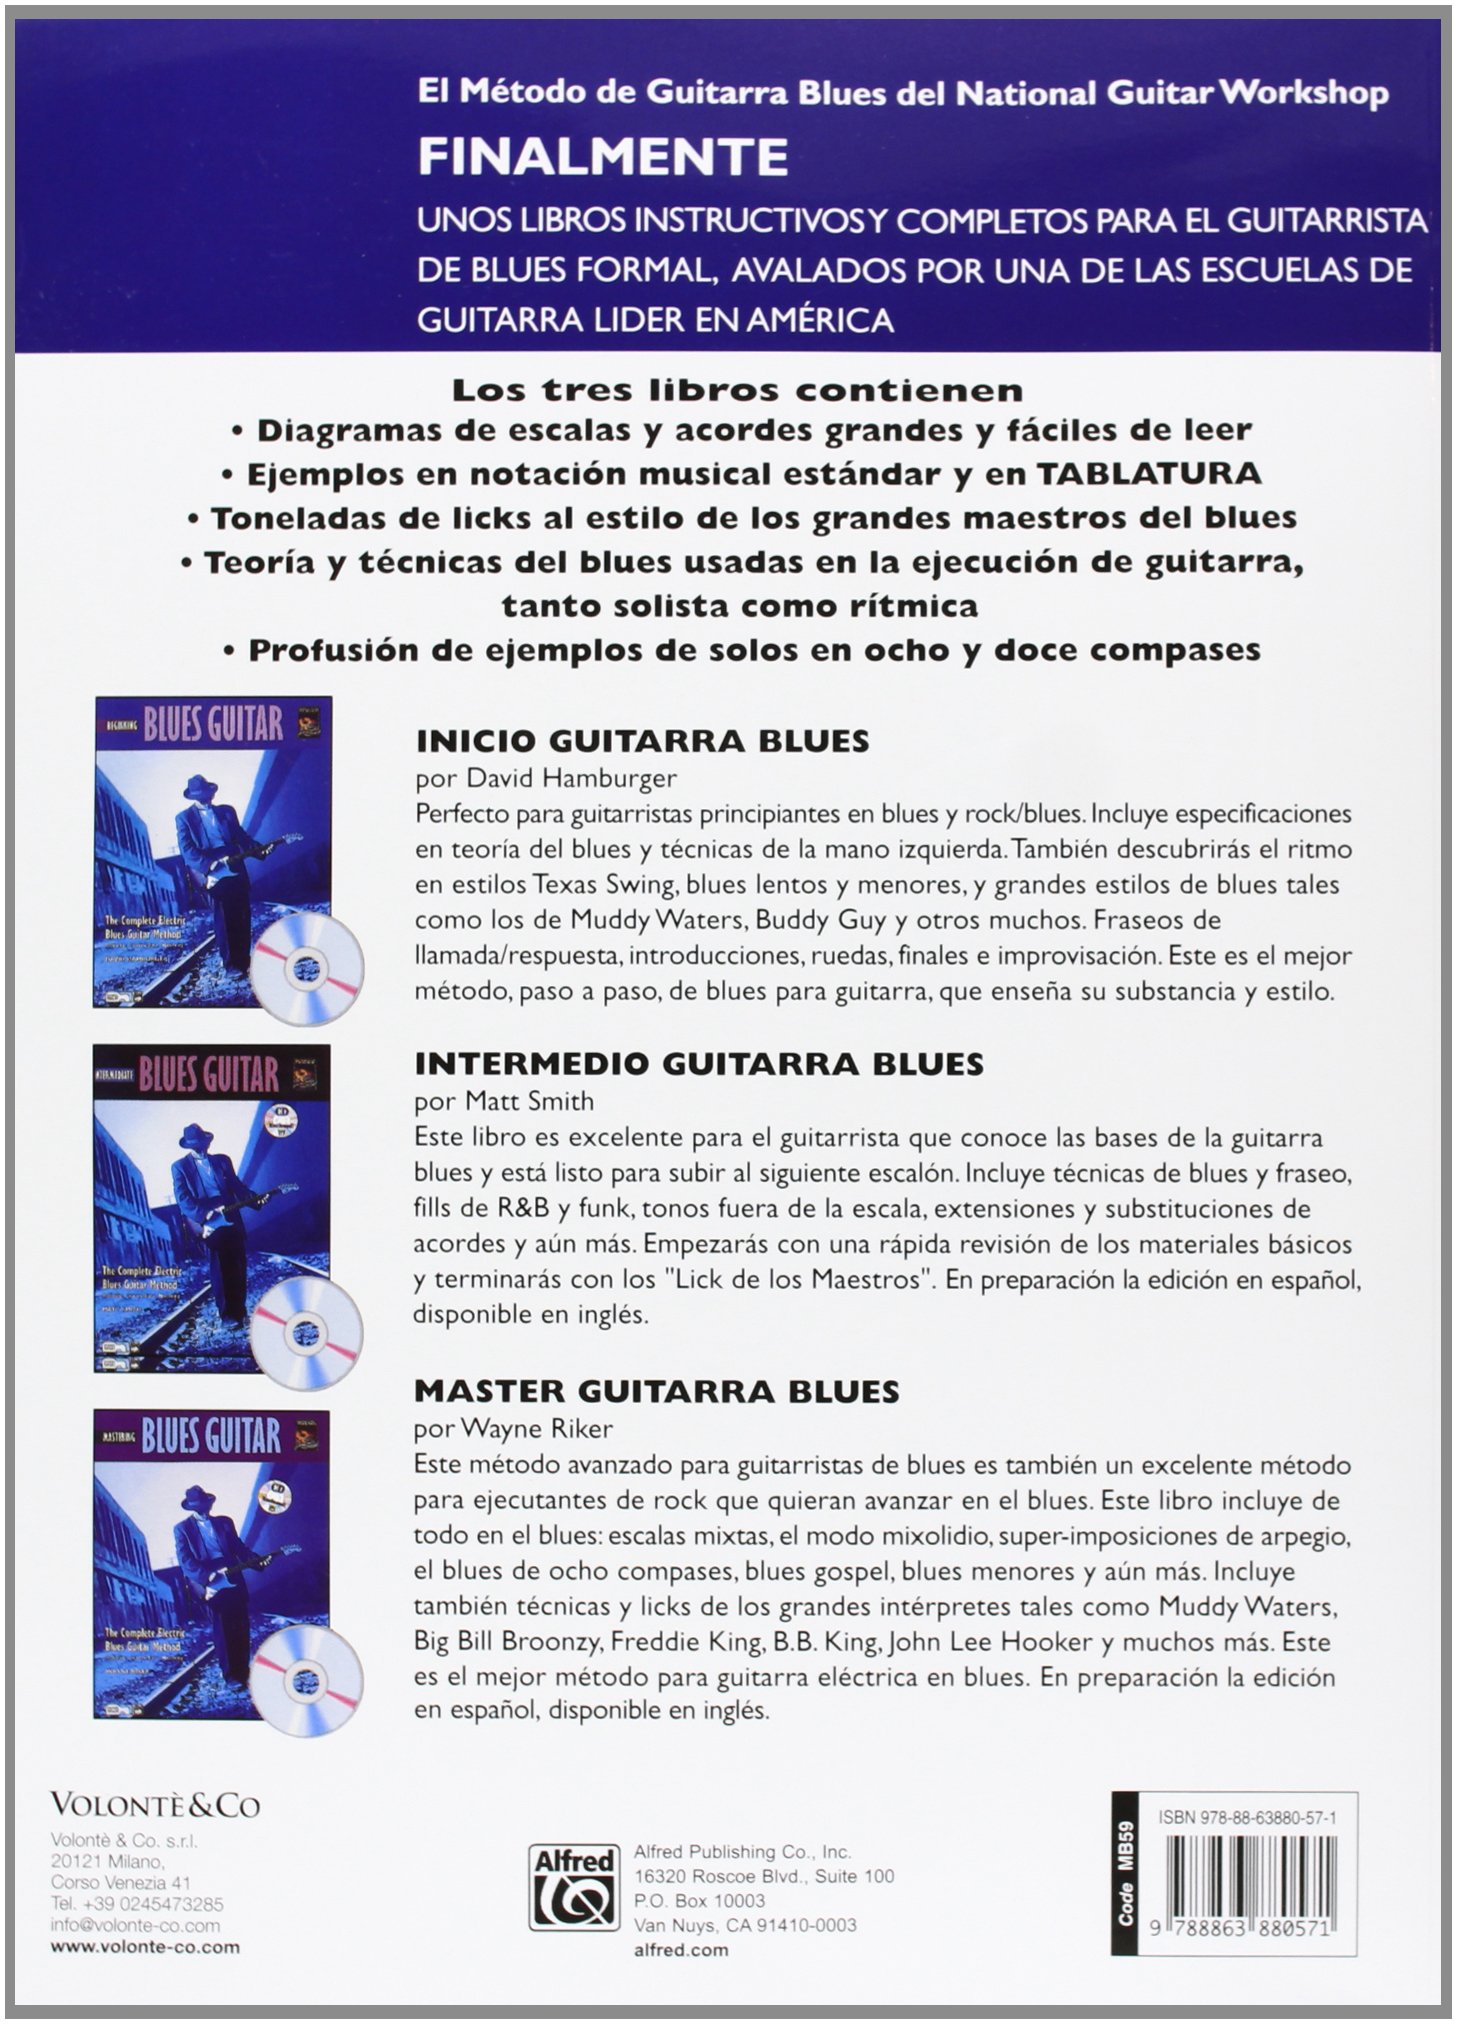 GUITARRA BLUES INICIO + CD (Complete Method): Amazon.es: Hamburger ...